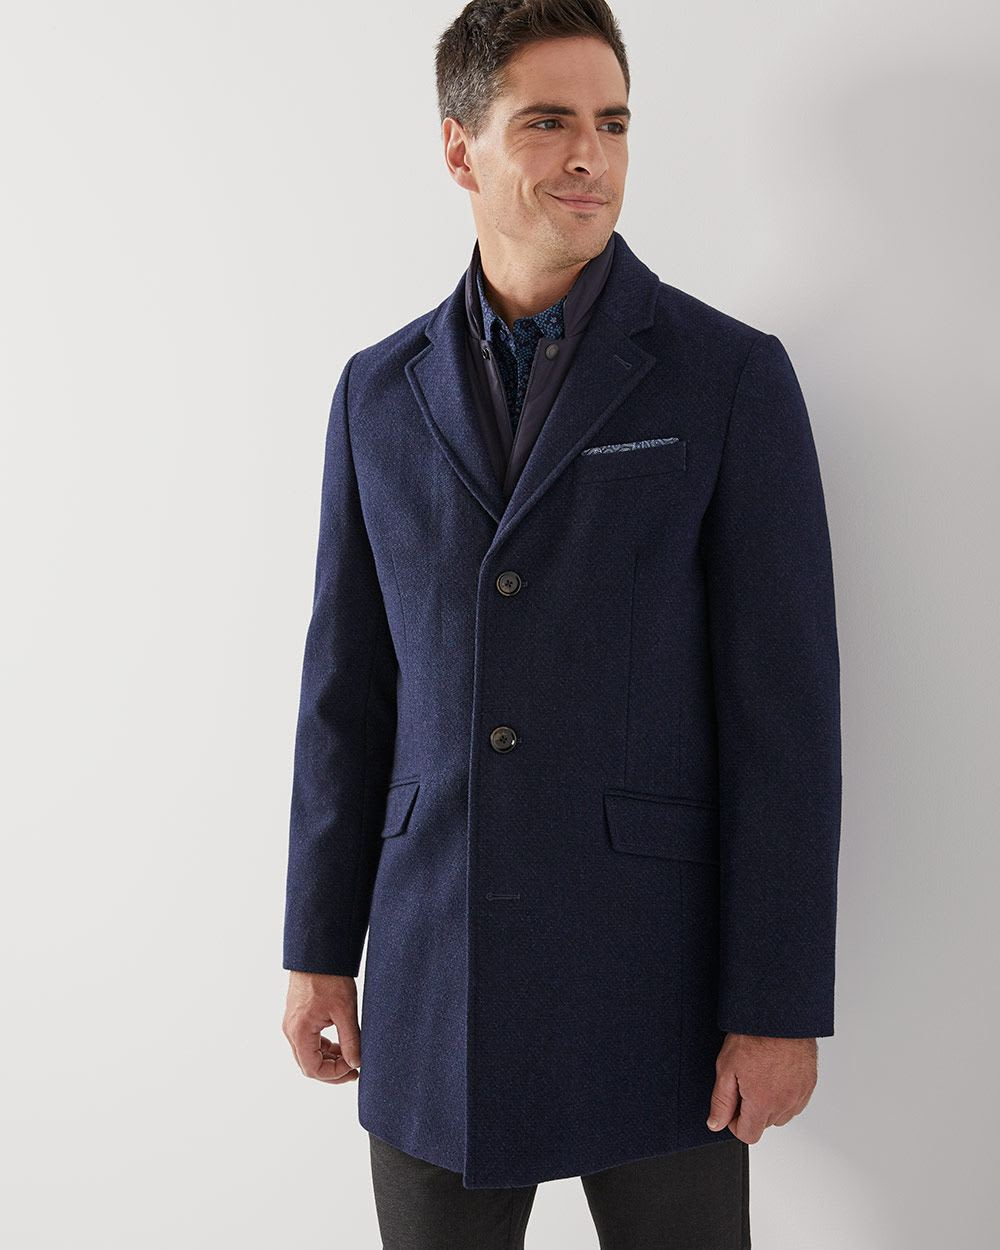 Navy Wool Blend Top Coat Rwco Tendencies Chinos Short 32